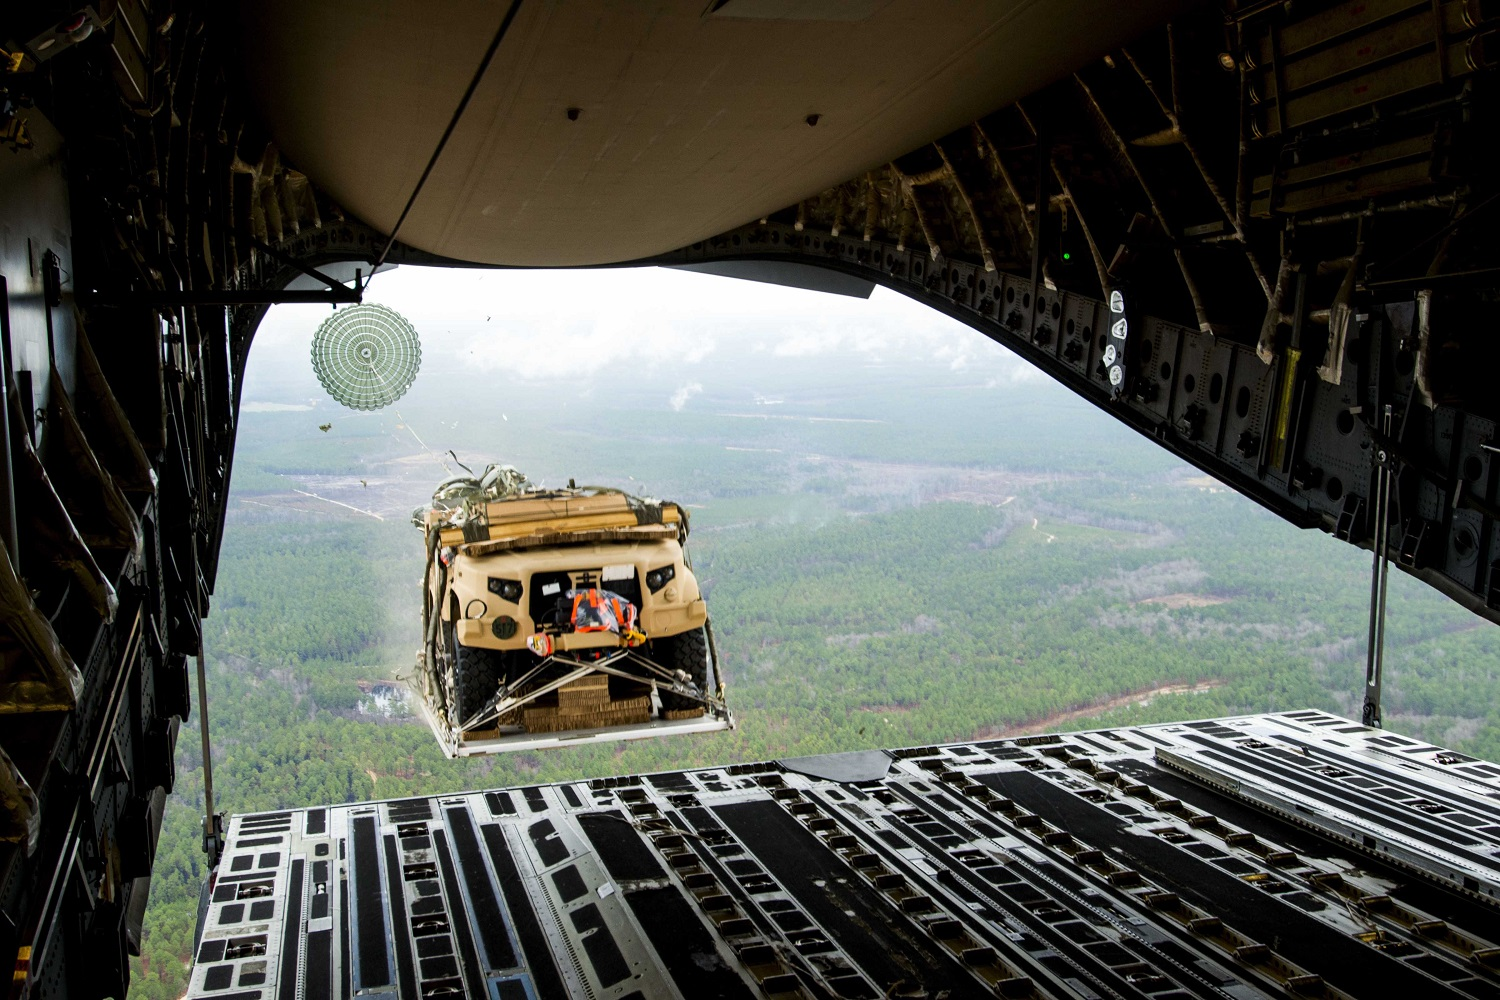 US Army Conduct Airdrop Road Tests of Joint Light Tactical Vehicle (JLTV)